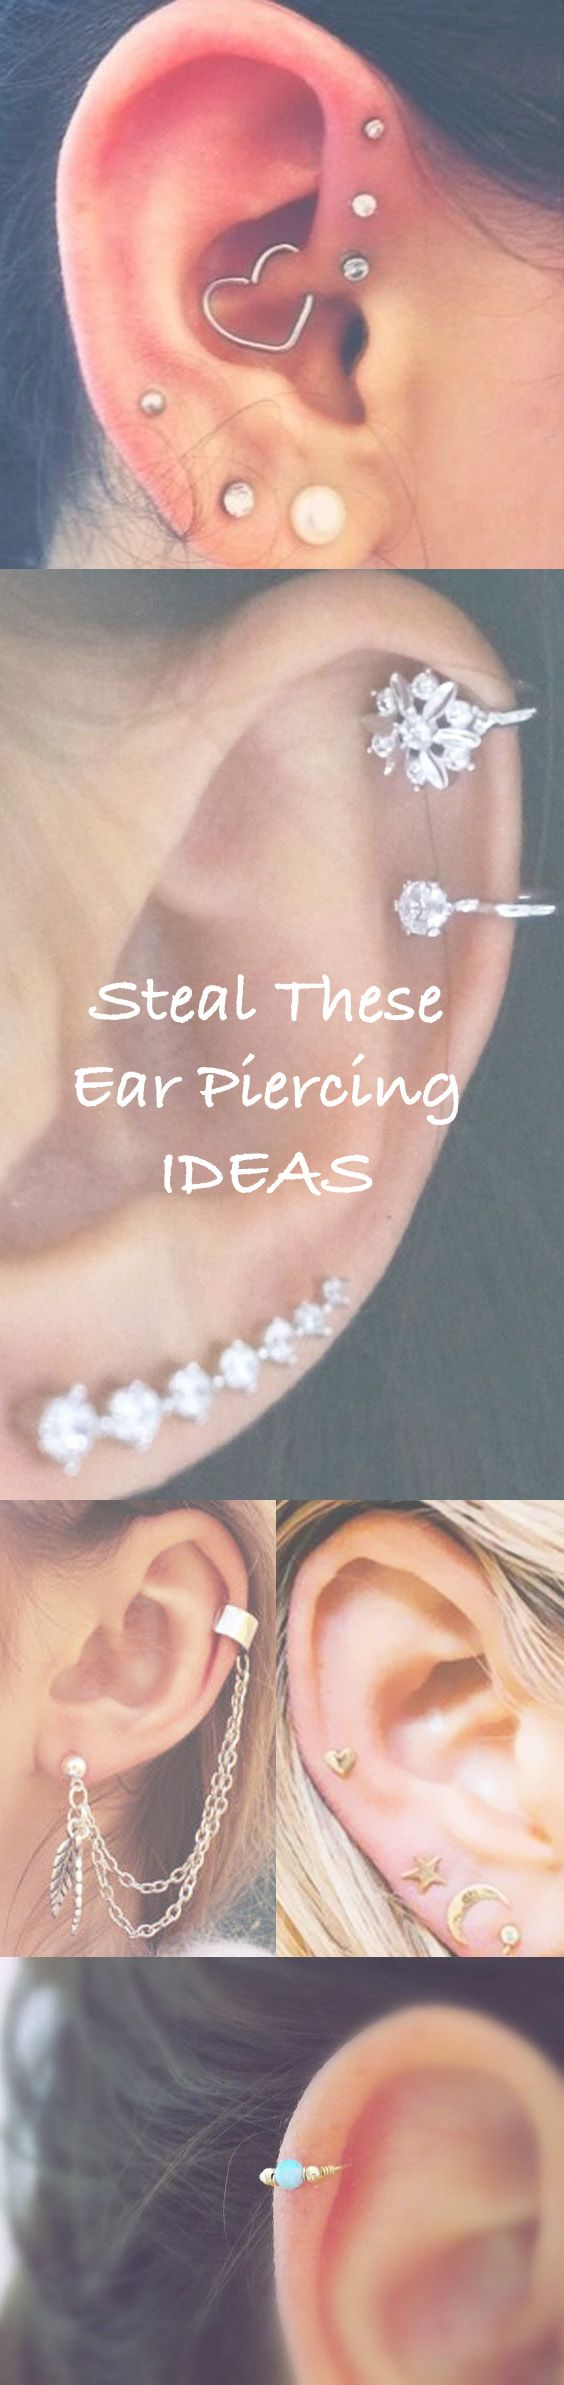 Cute Ear Piercing Ideas at MyBodiArt.com - Cartilage, Tragus, Helix, Rook, Daith, Jewelry, Jewellery, Piercings, Earrings, Ear Jacket, Ear Cuffs